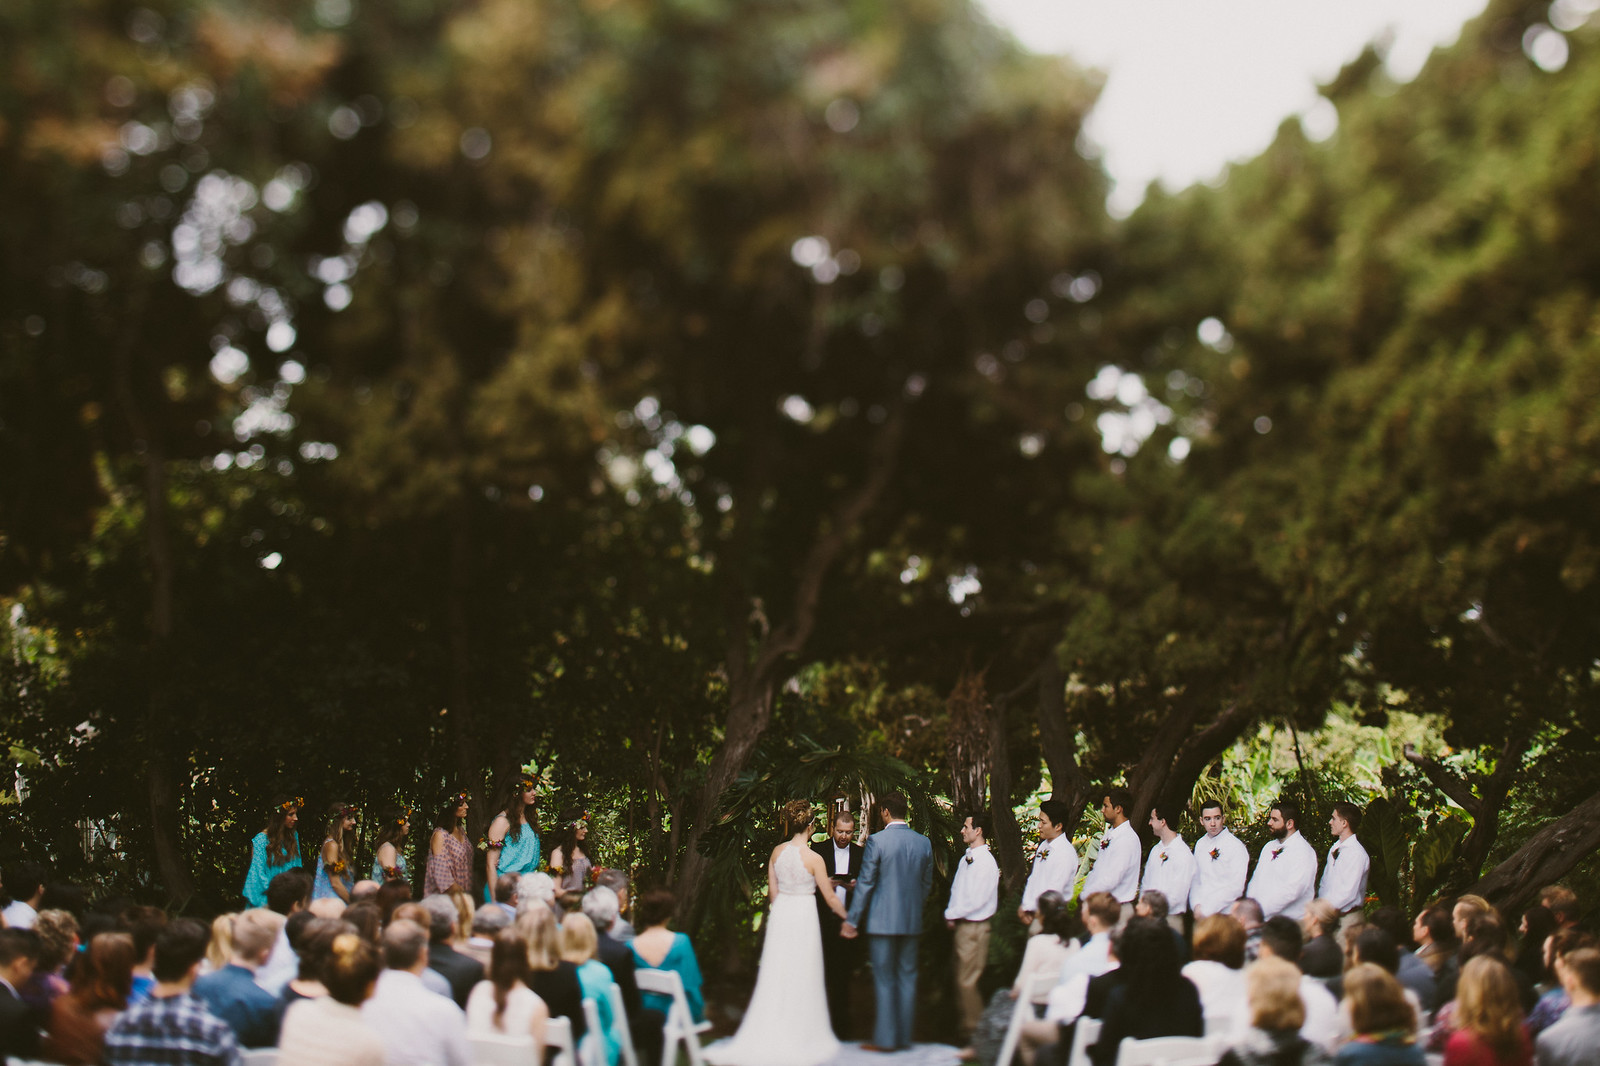 sandiego-botanic-garden-wedding-34.jpg